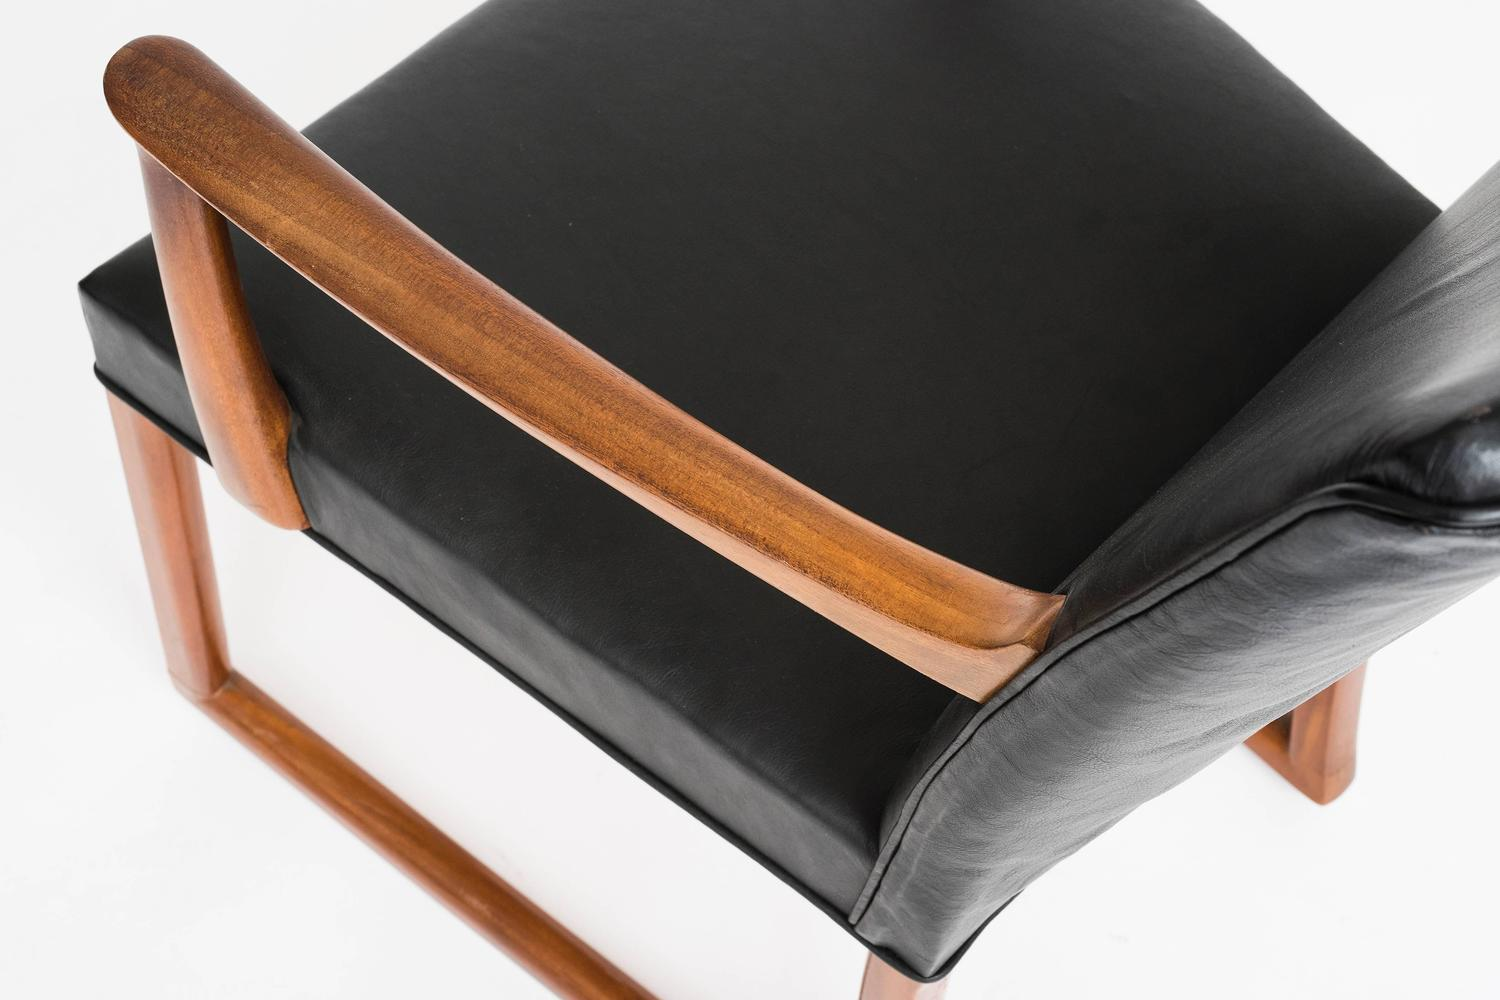 Rocking Chair in mahogny and black leather For Sale at 1stdibs